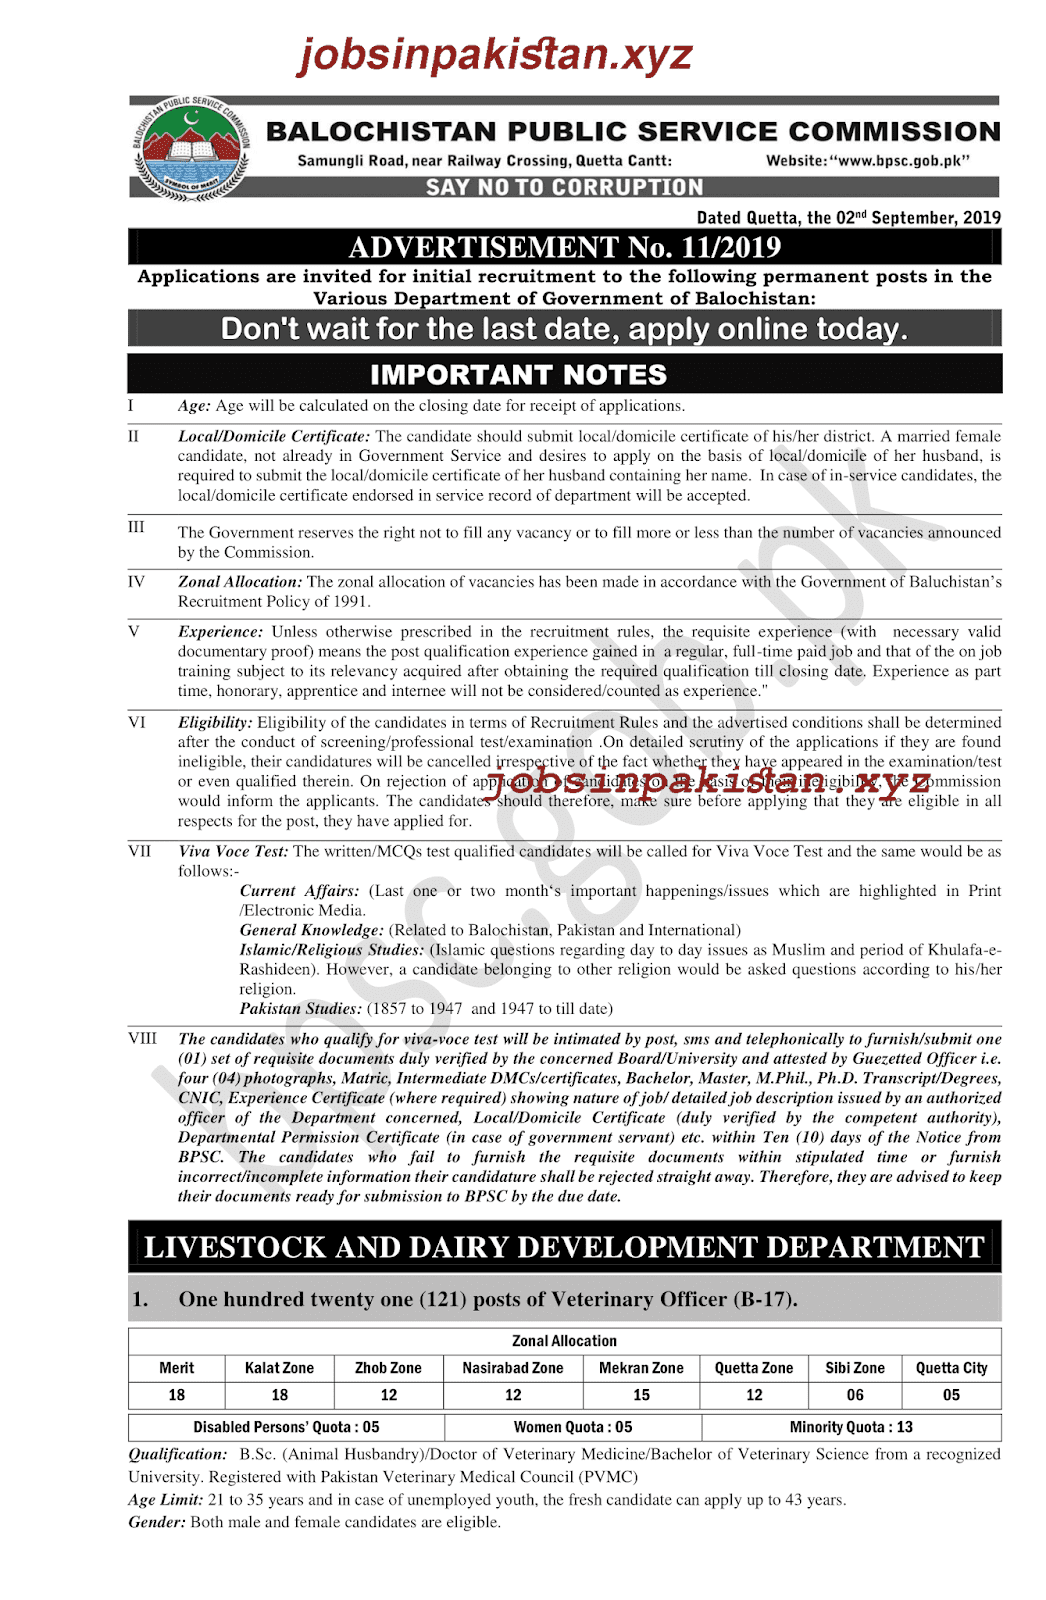 BPSC Advertisement 11/2019 Page No. 1/6